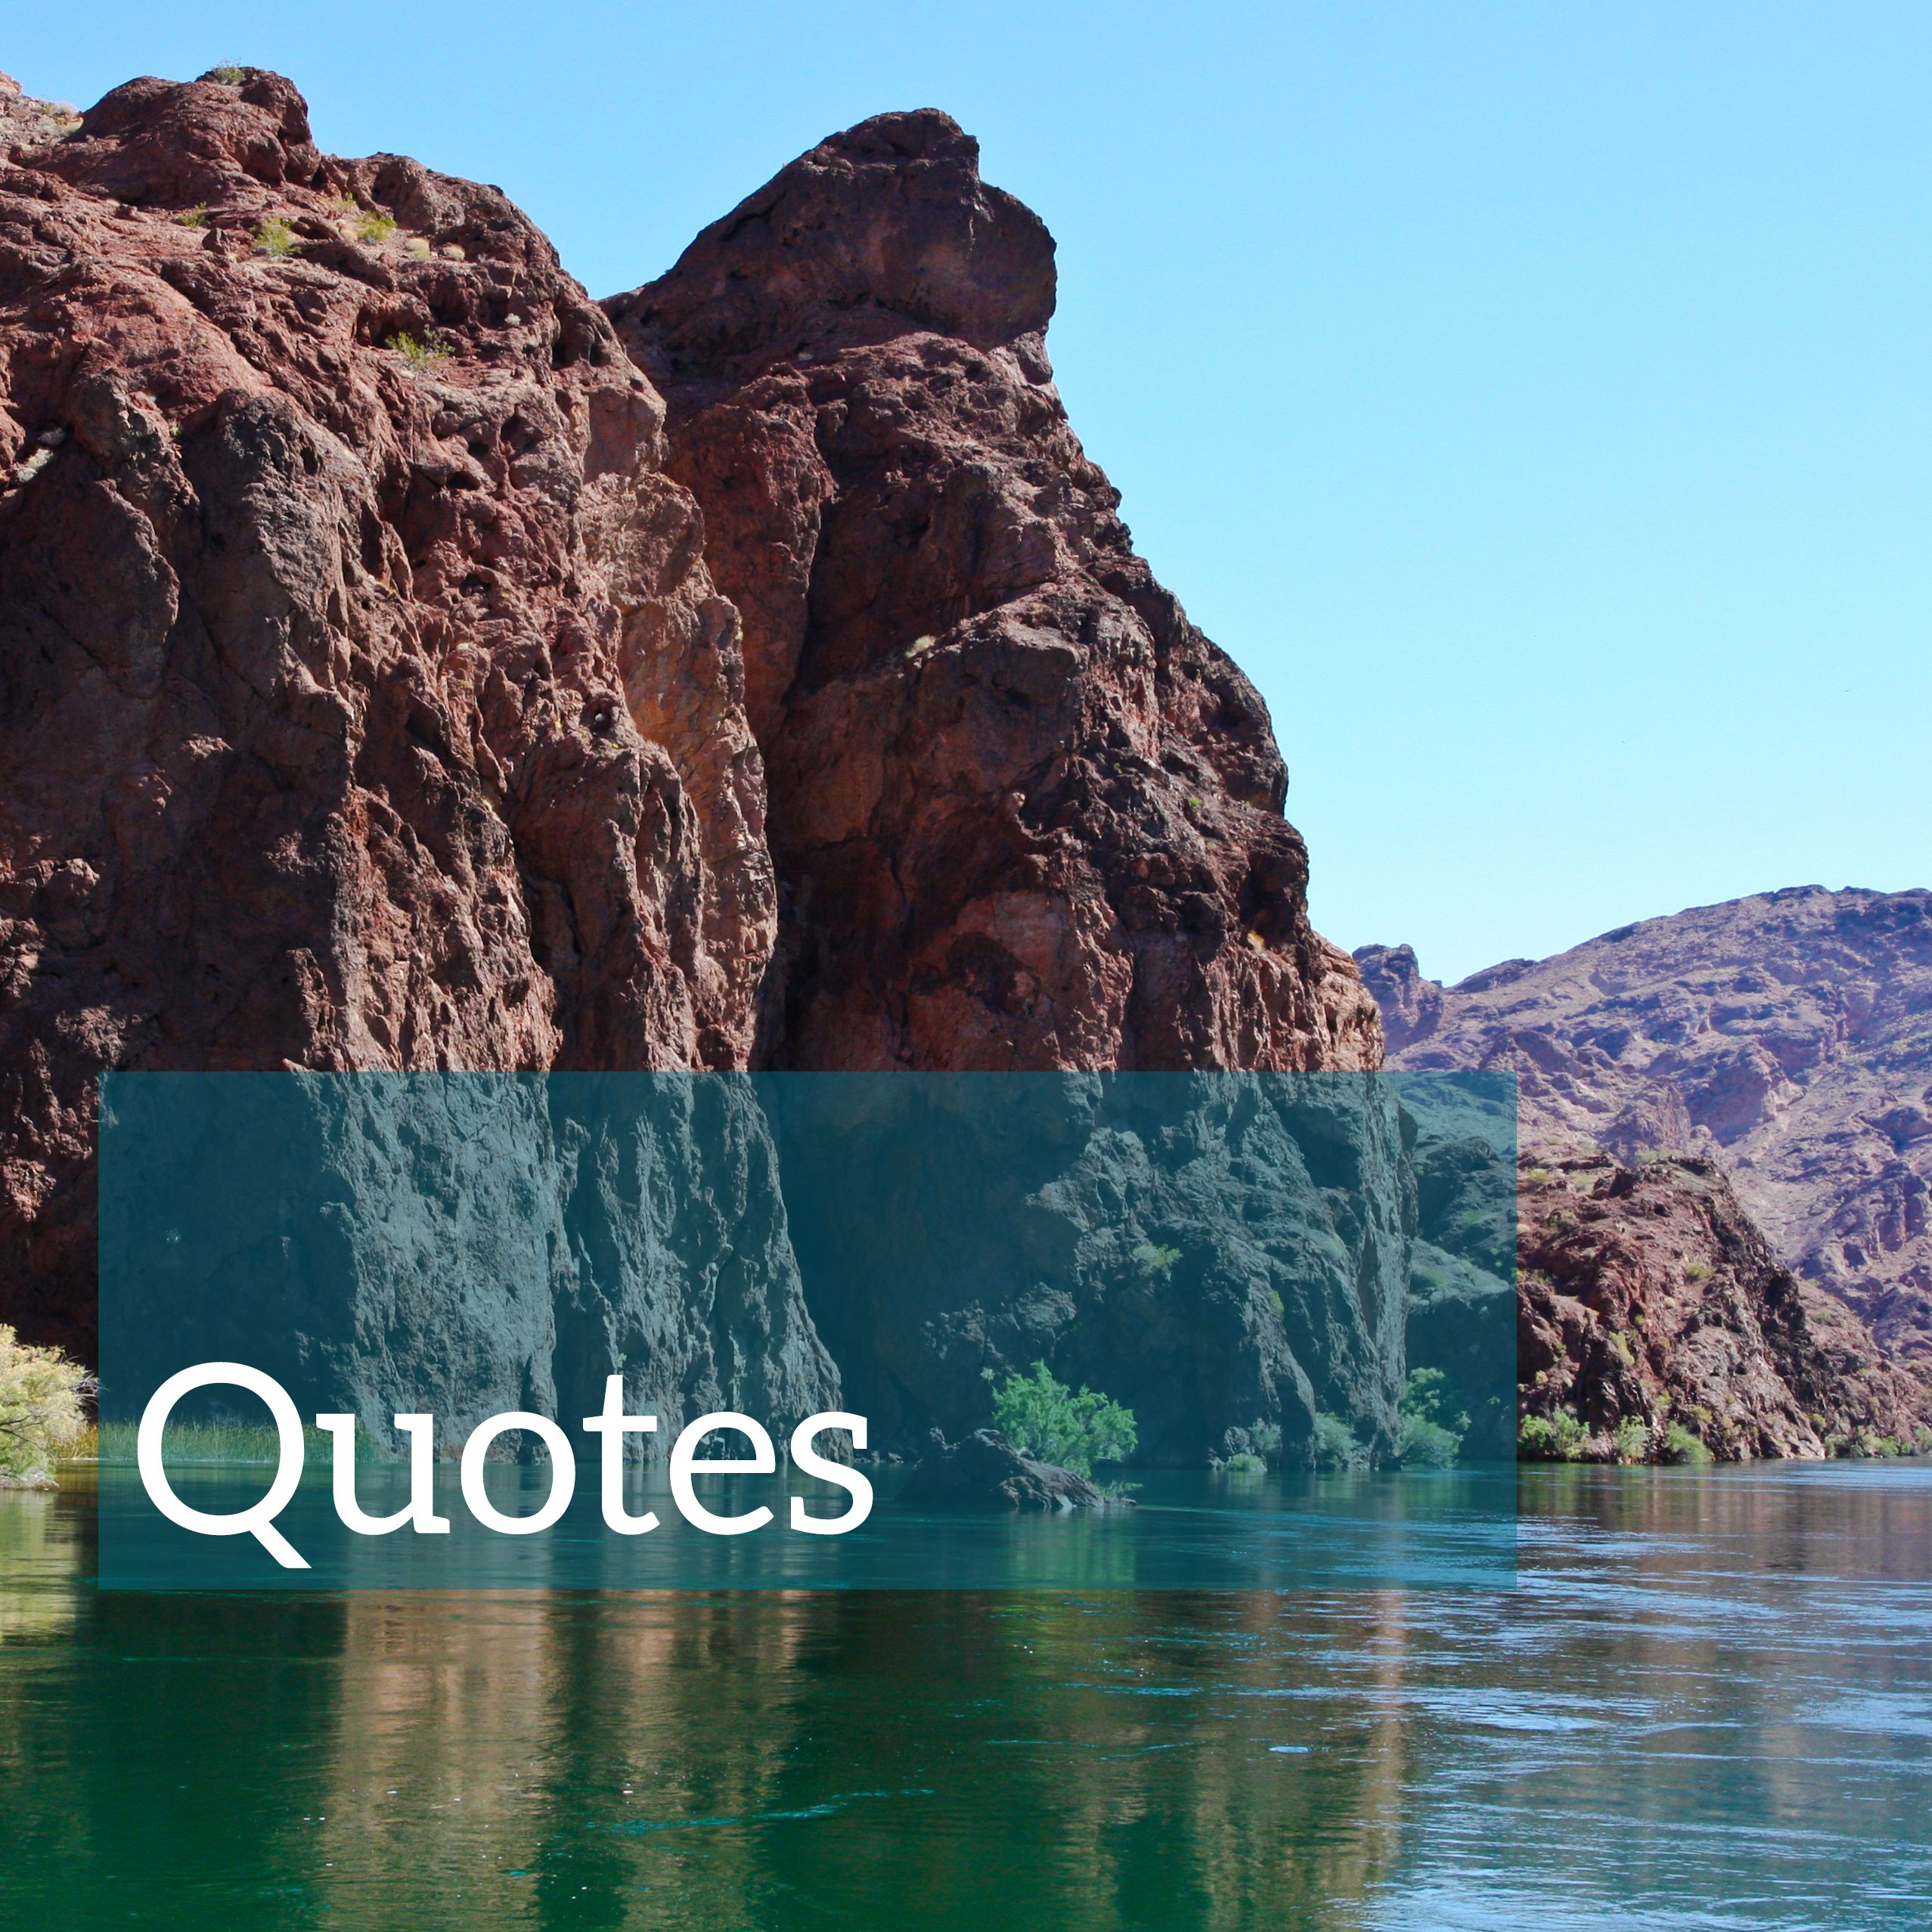 Travel and adventure quotes from the Lake Havasu City CVB ...